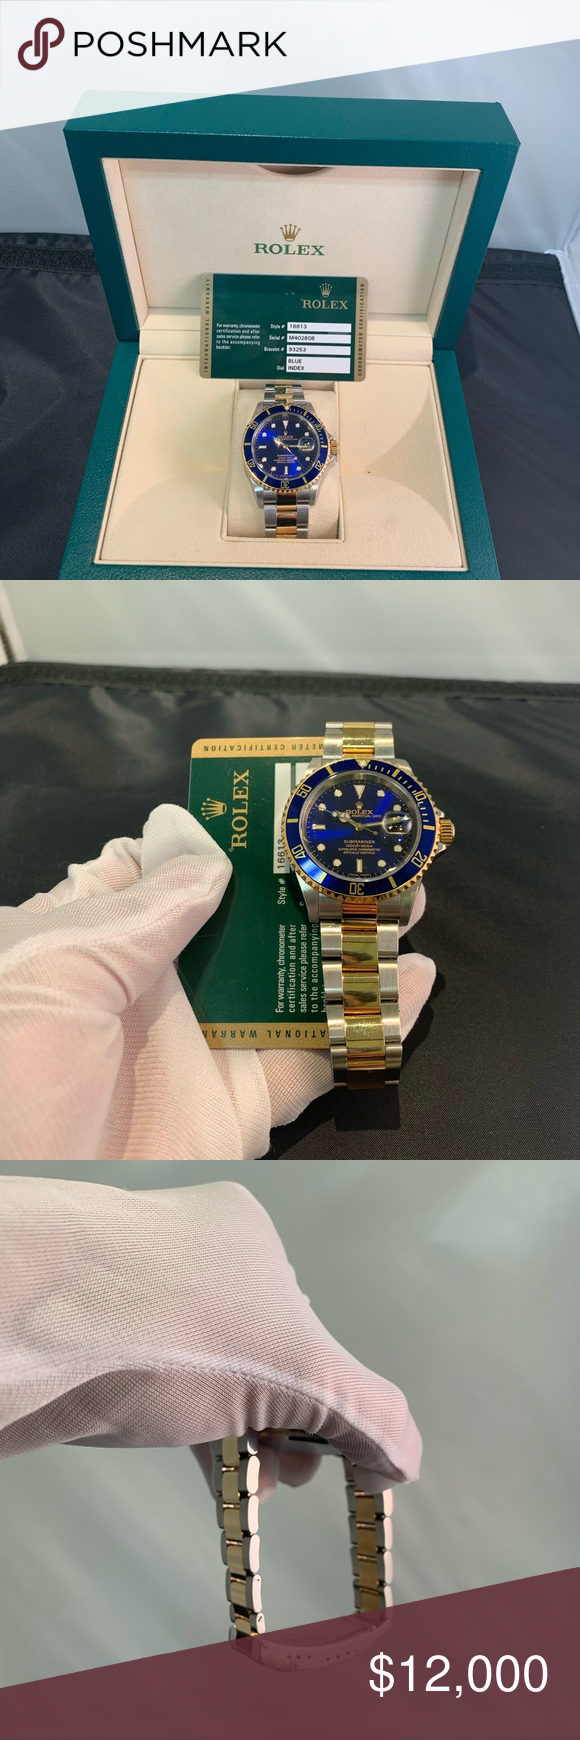 Rolex Submariner Two tone Rolex submariner 16613 Card dated 2008  Just polished and serviced will come with a one year warranty  Delman Watch Service, Cranston RI   Contact for any additional info   Watch and card (add $200 for box) Rolex Accessories Watches #rolexsubmariner Rolex Submariner Two tone Rolex submariner 16613 Card dated 2008  Just polished and serviced will come with a one year warranty  Delman Watch Service, Cranston RI   Contact for any additional info   Watch and card (add $200 #rolexsubmariner